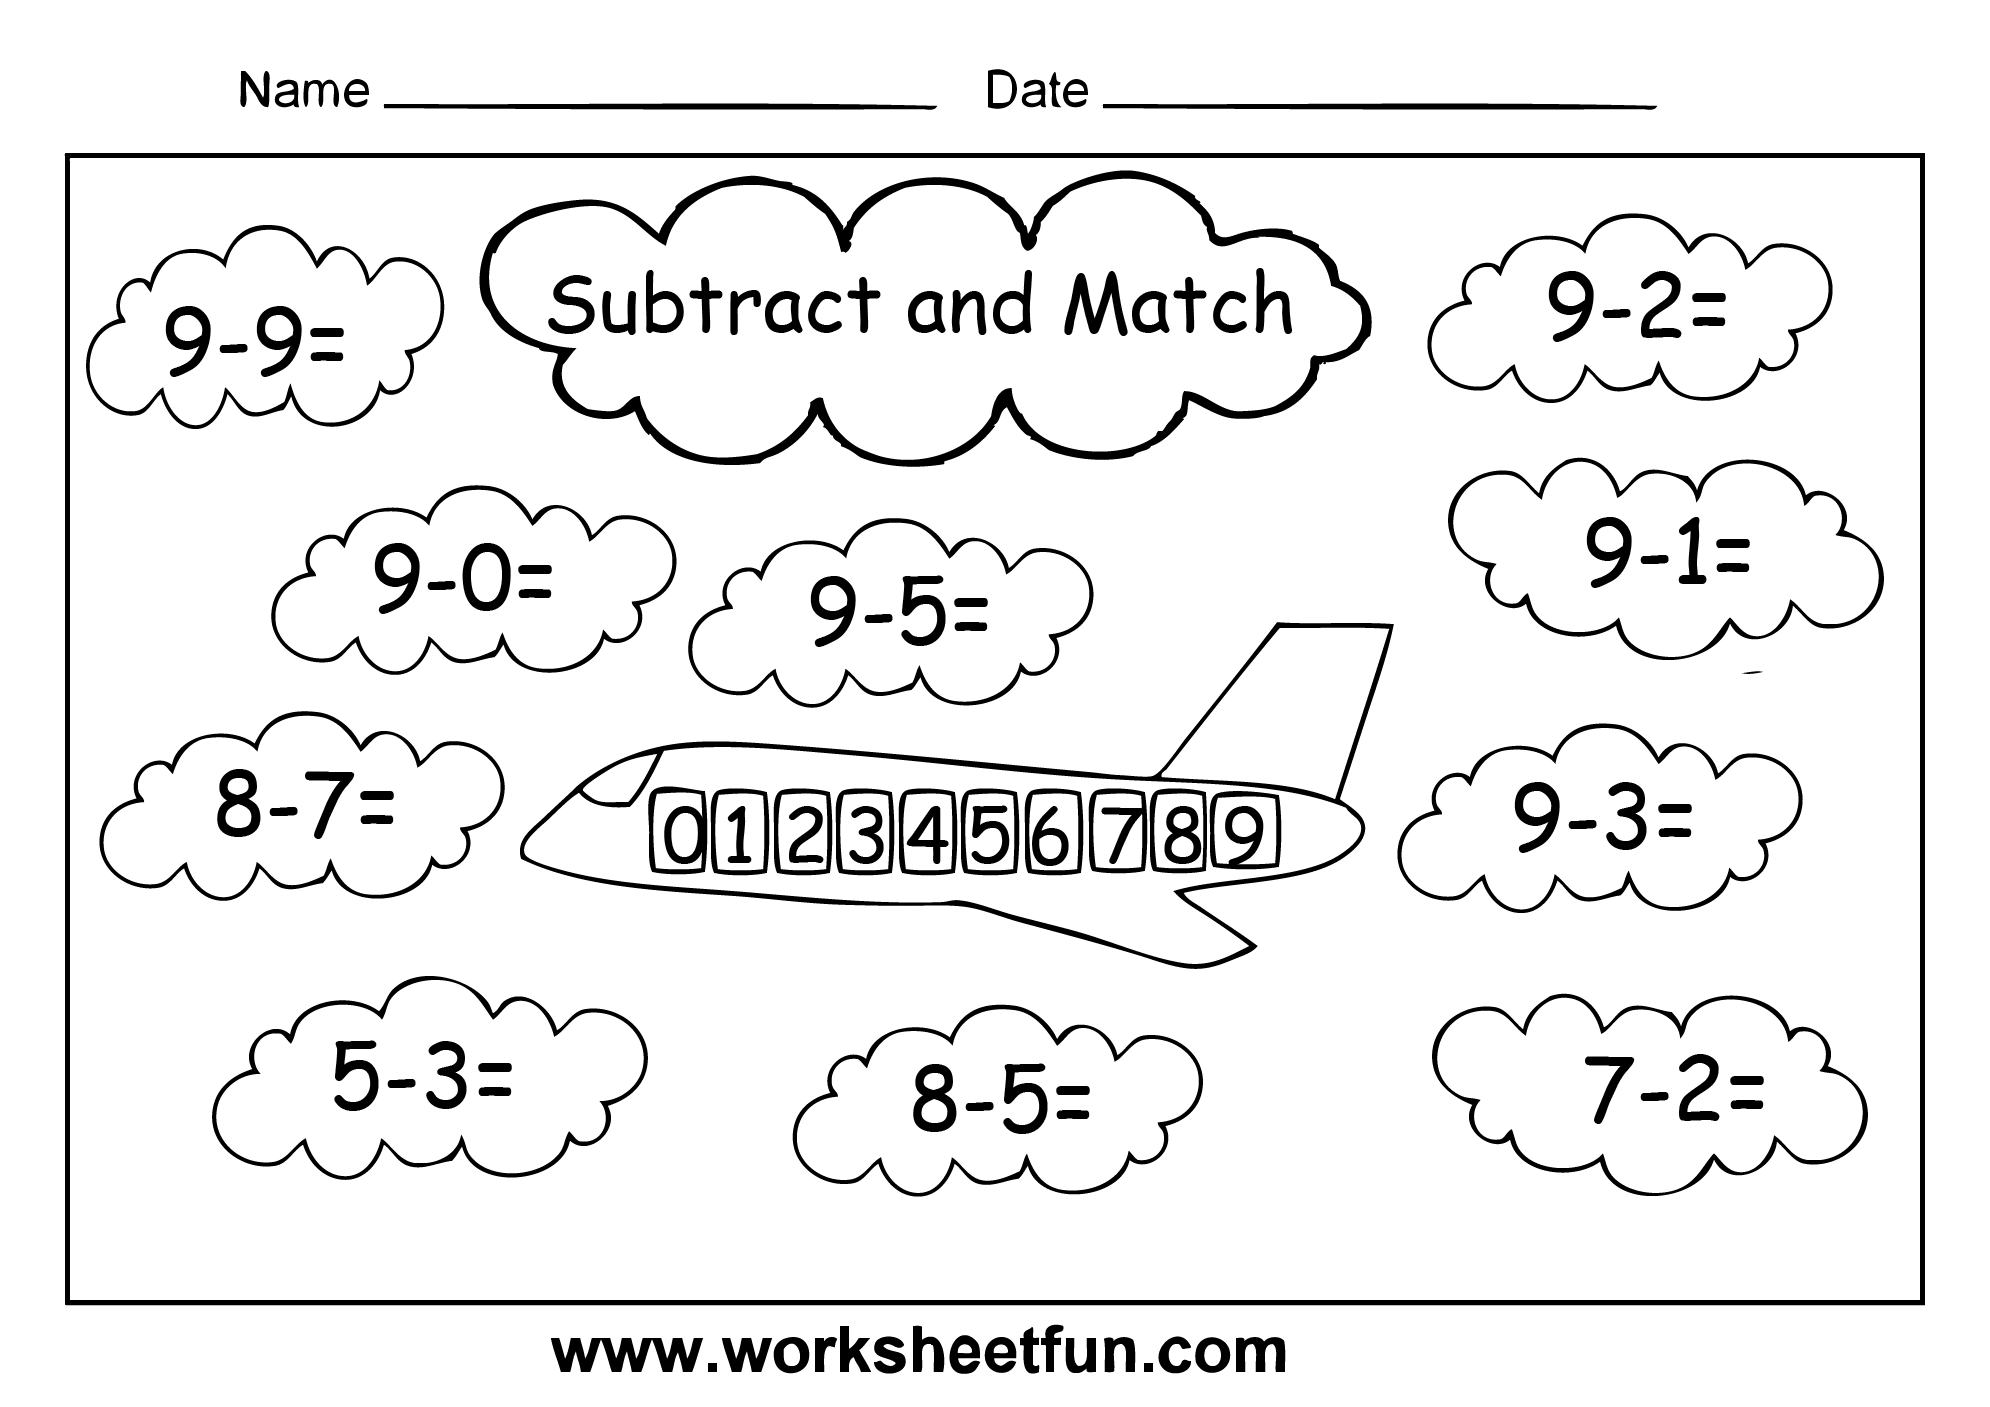 math worksheet : 1000 images about worksheets on pinterest  first grade math  : Subtraction Worksheets First Grade